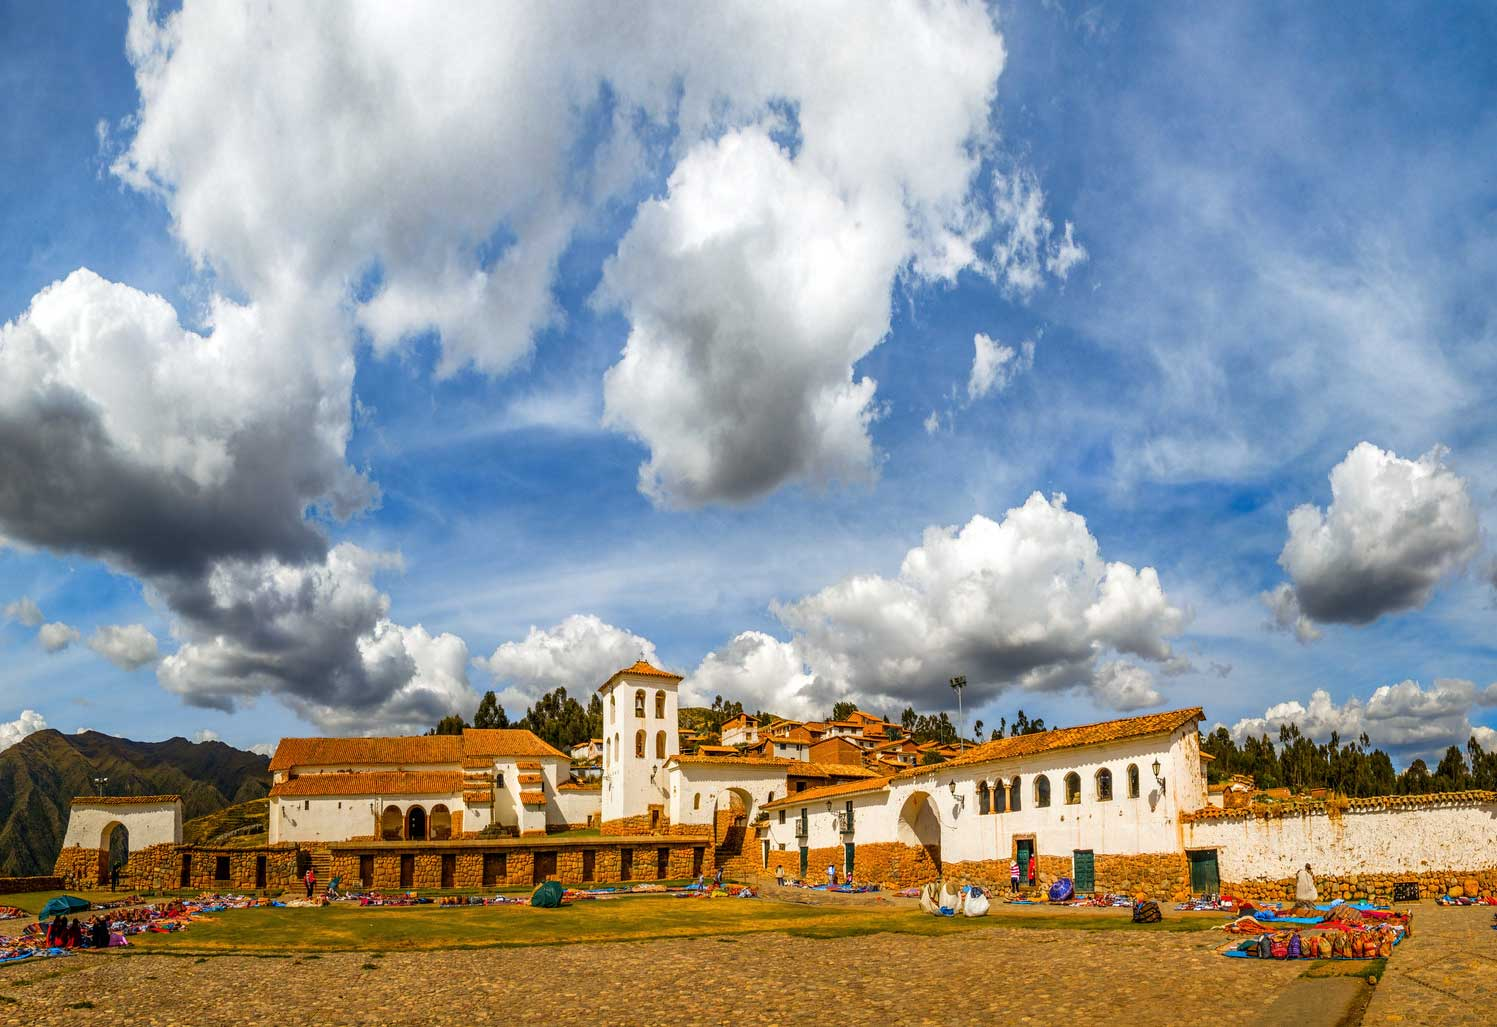 Archaeological complex of Chinchero